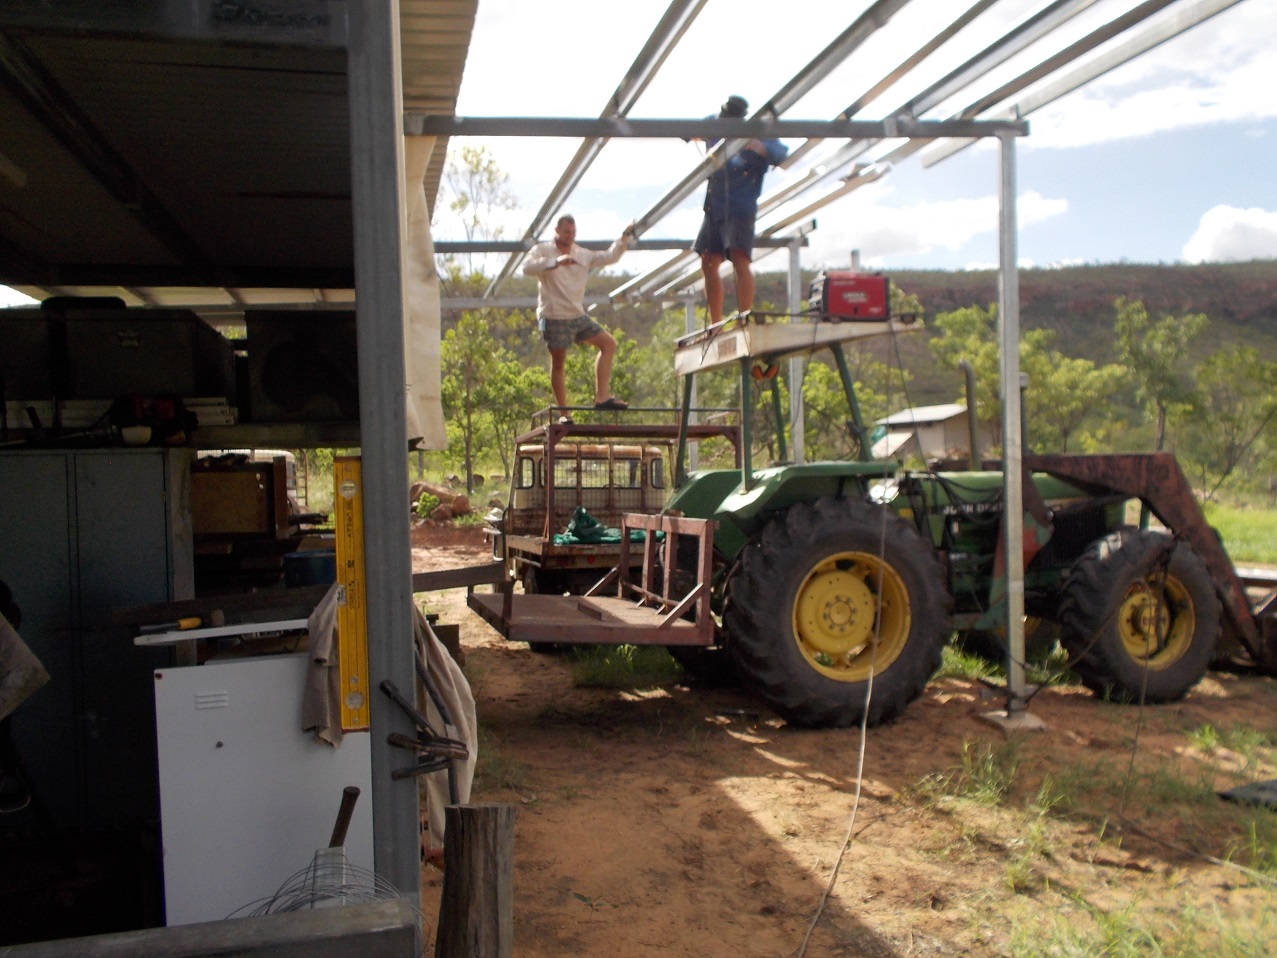 Helicopters require hangars! Working at heights requires platforms and hand-rails